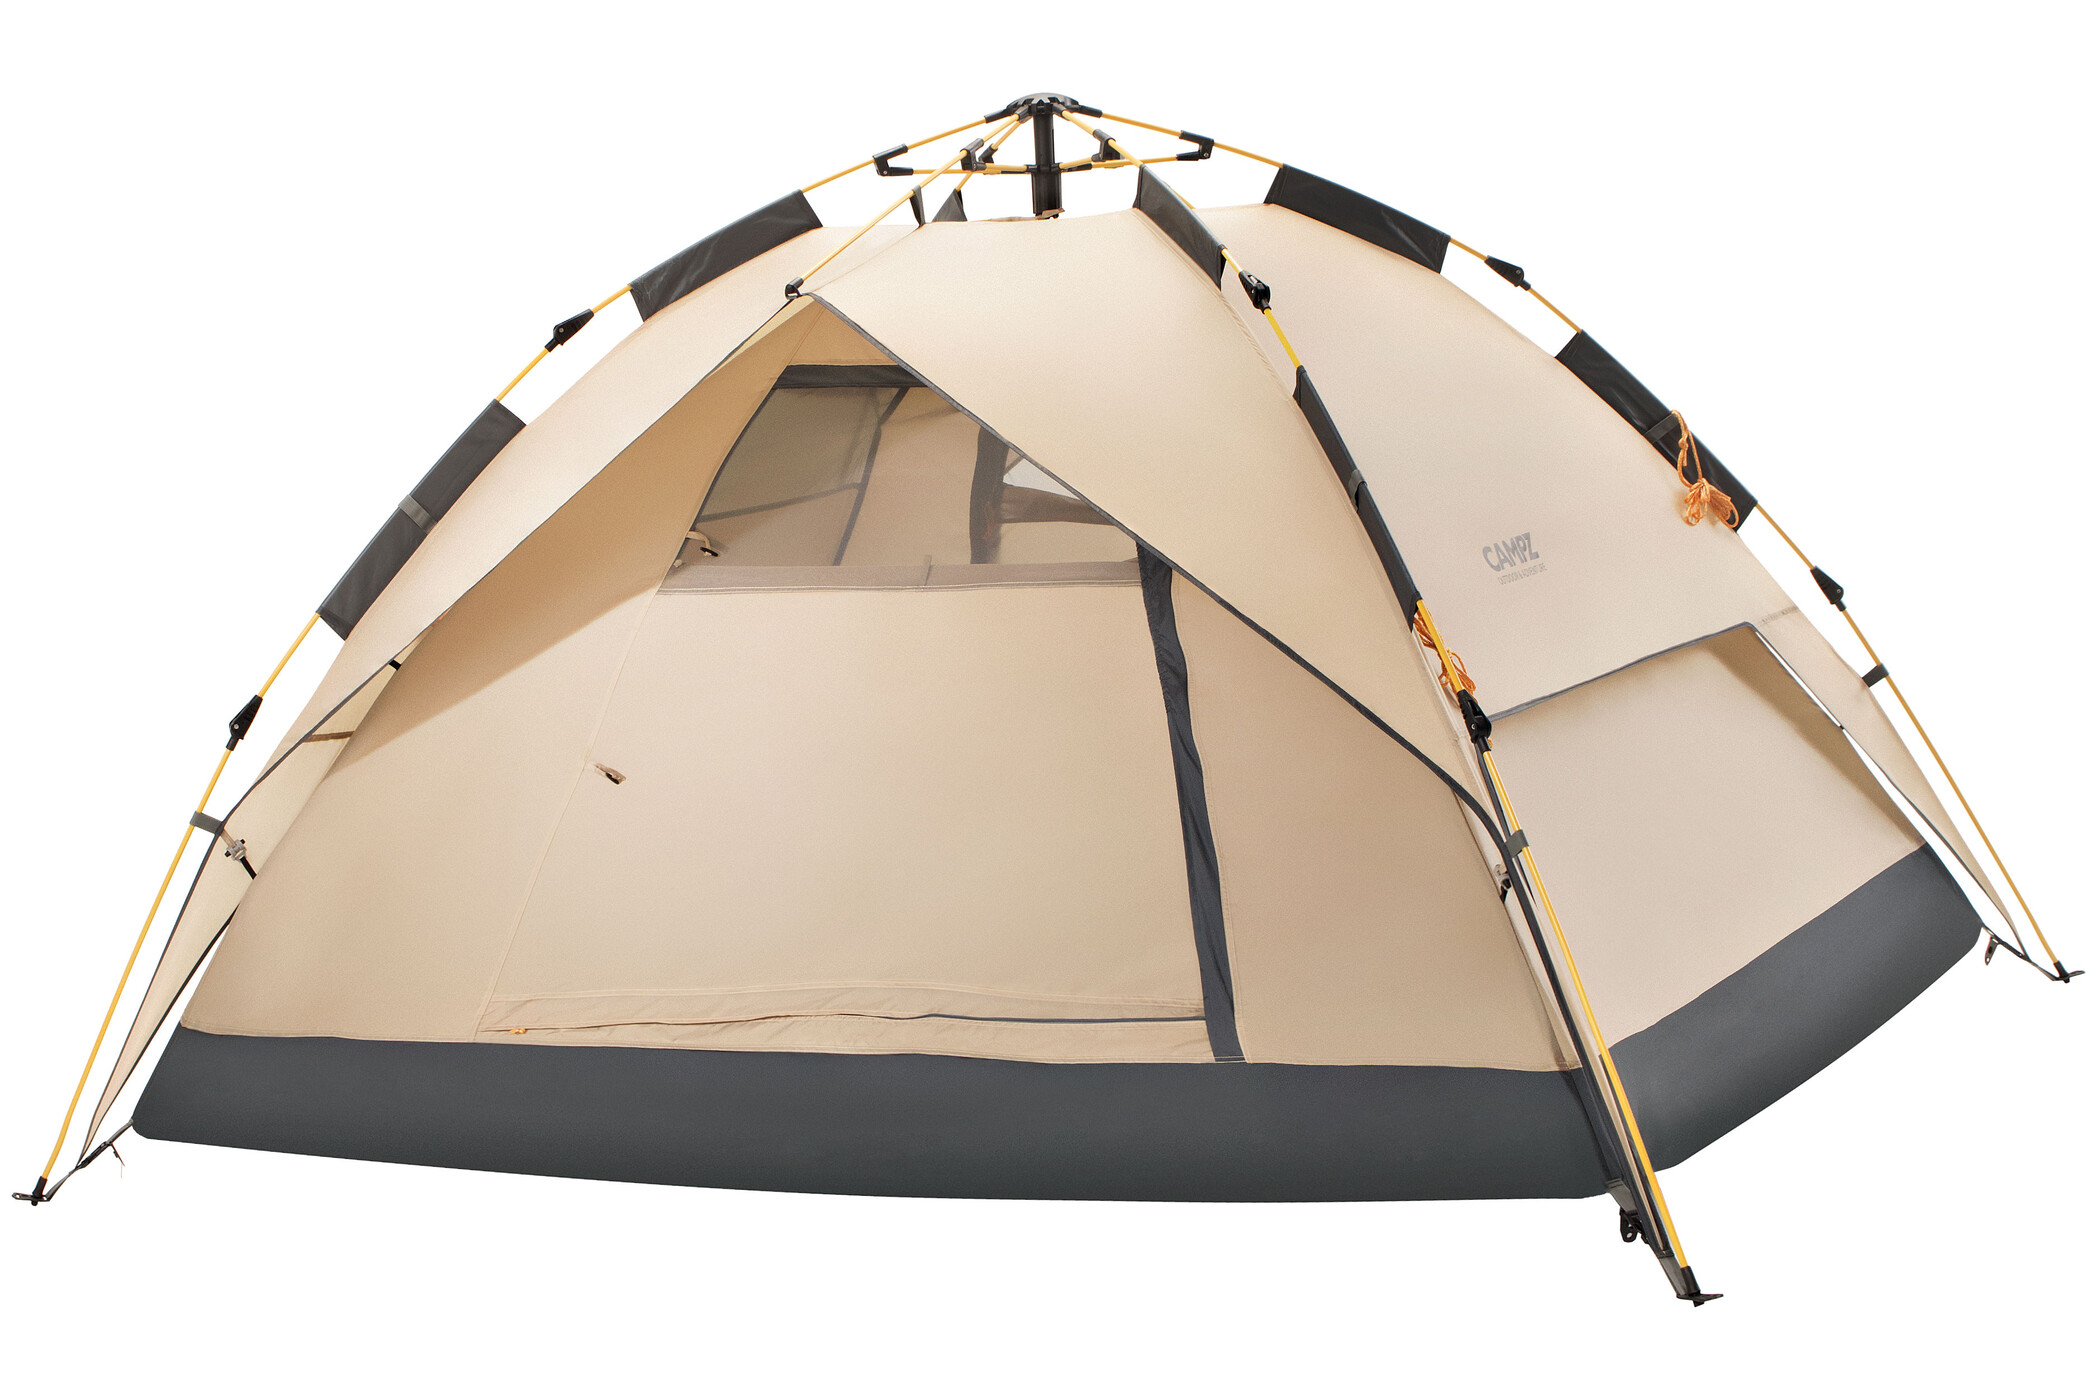 CAMPZ Grassland OT 3P Telt, beige (2019) | Misc. Transportation and Storage